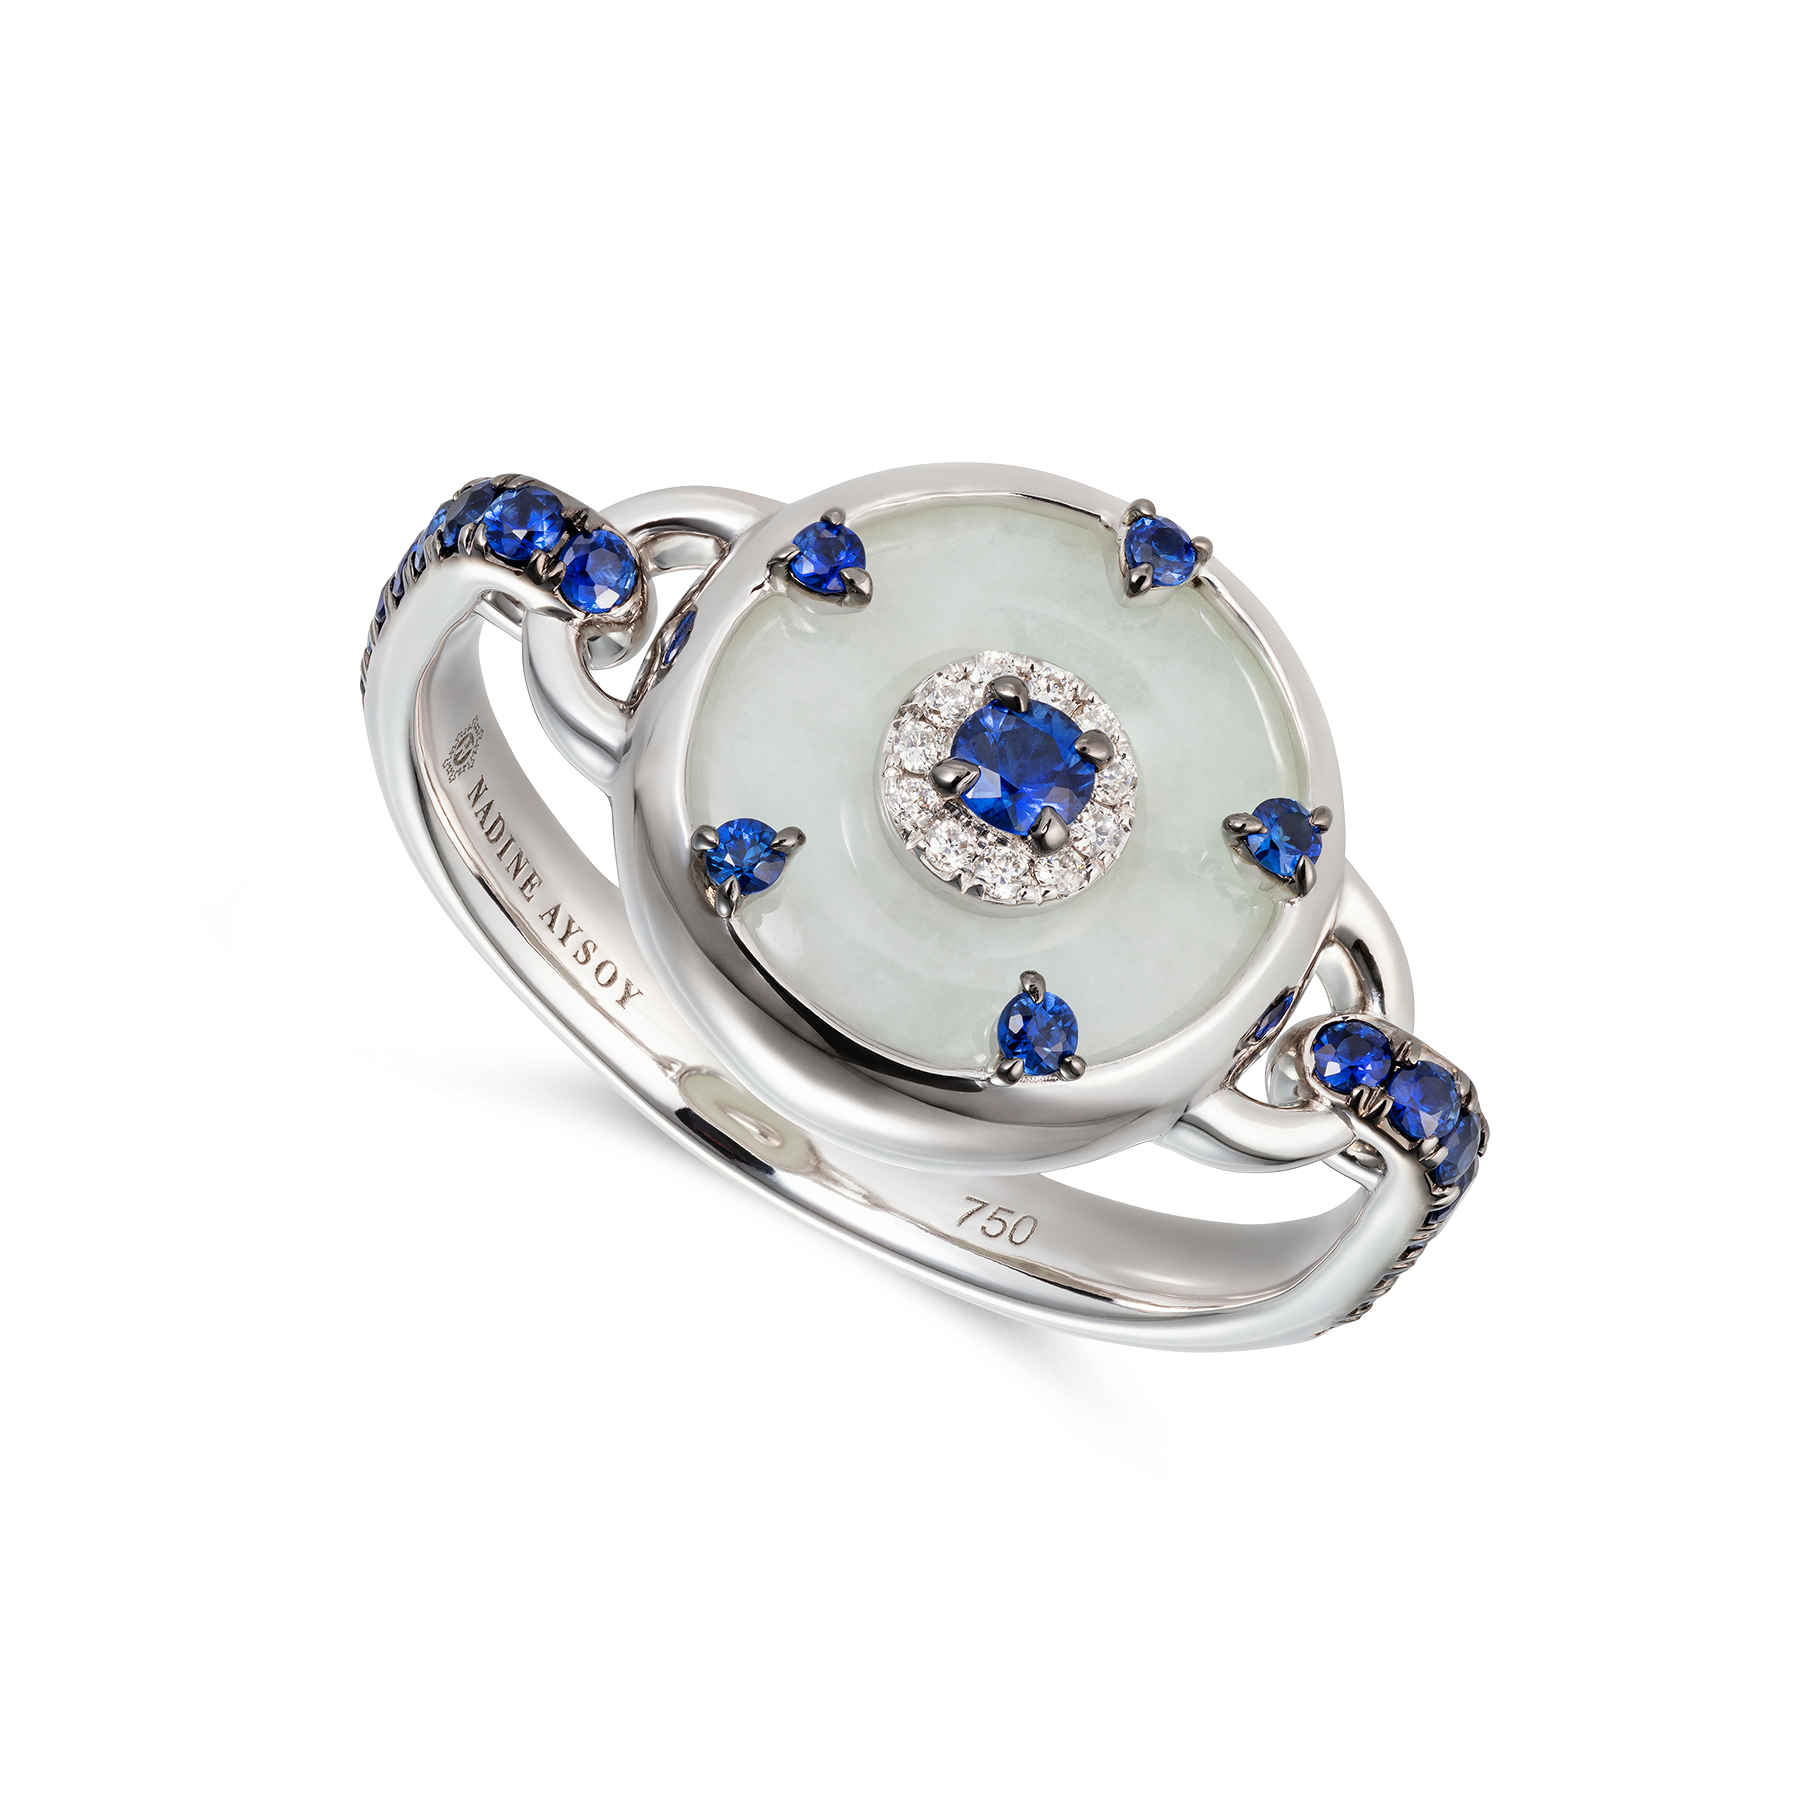 Celeste Petite Blue Sapphire and Jade Ring by Nadine Aysoy on curated-crowd.com